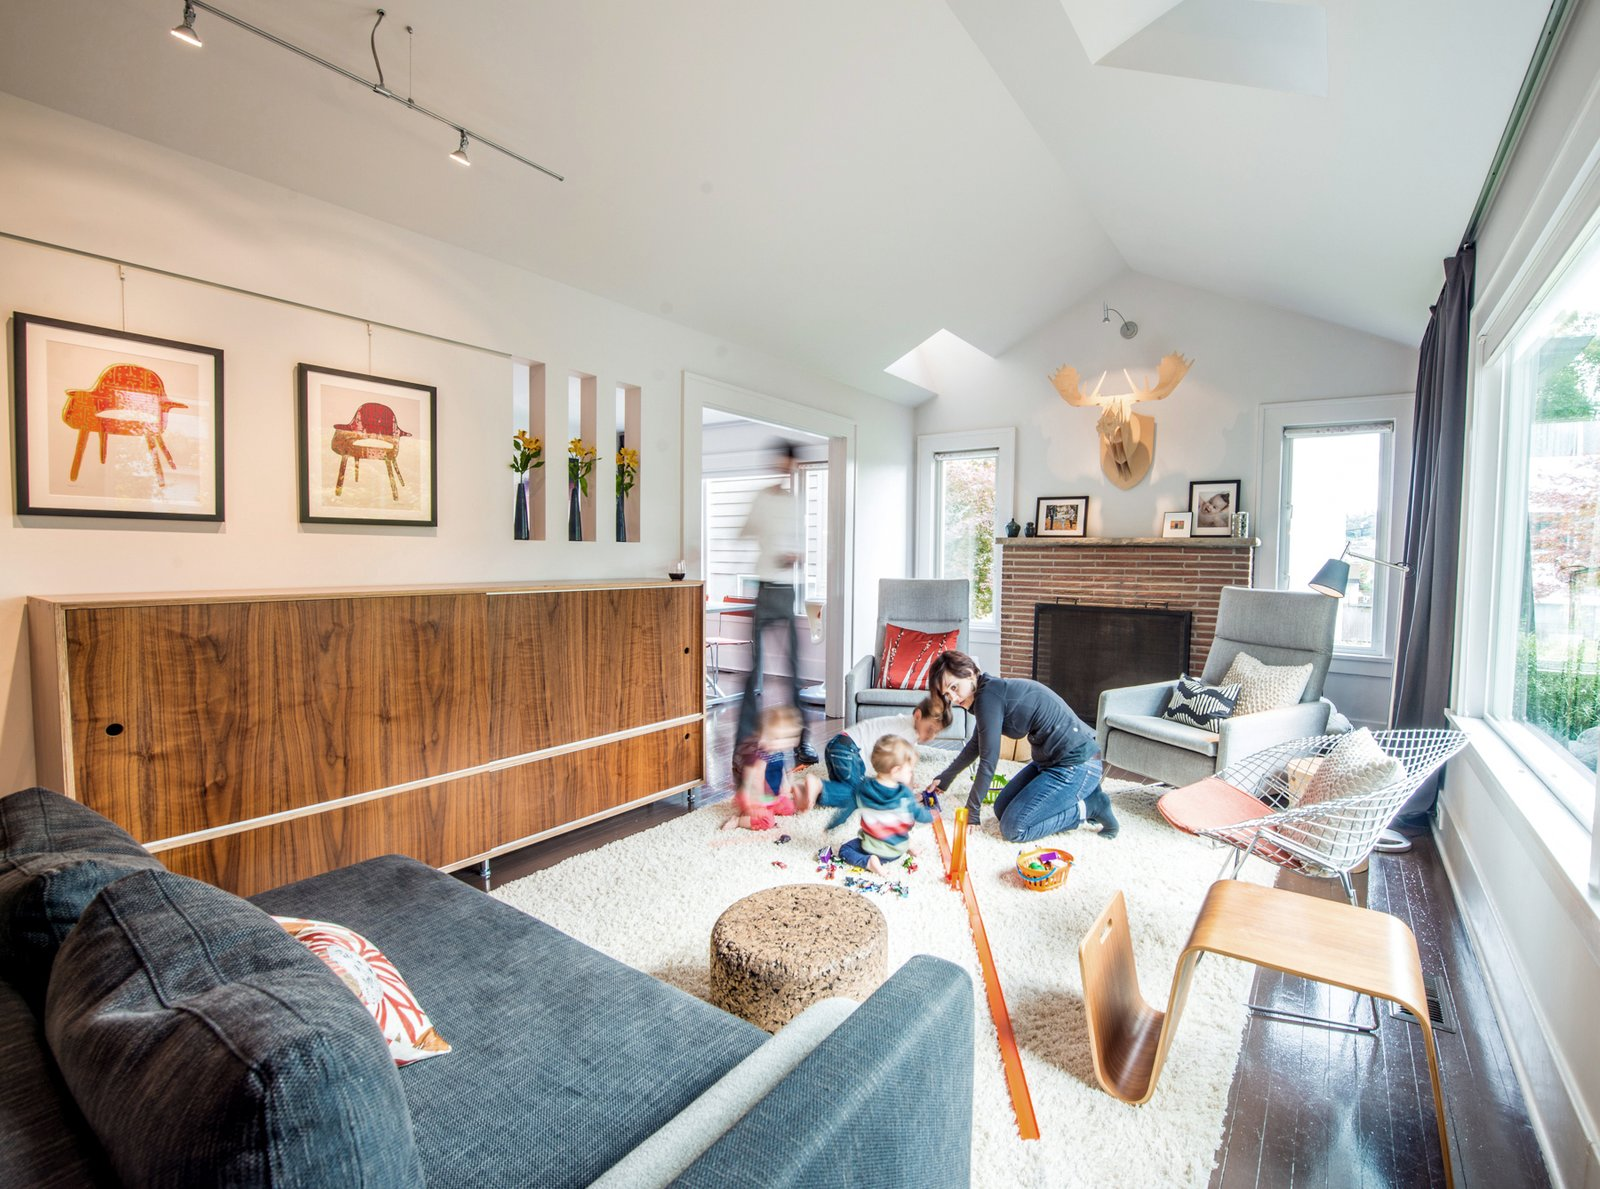 The Imhoffs vaulted the ceiling in their living room, dispensing with the old attic and carving out skylights to draw natural light into the space.  Photo 2 of 7 in Transformative House Renovation in Seattle